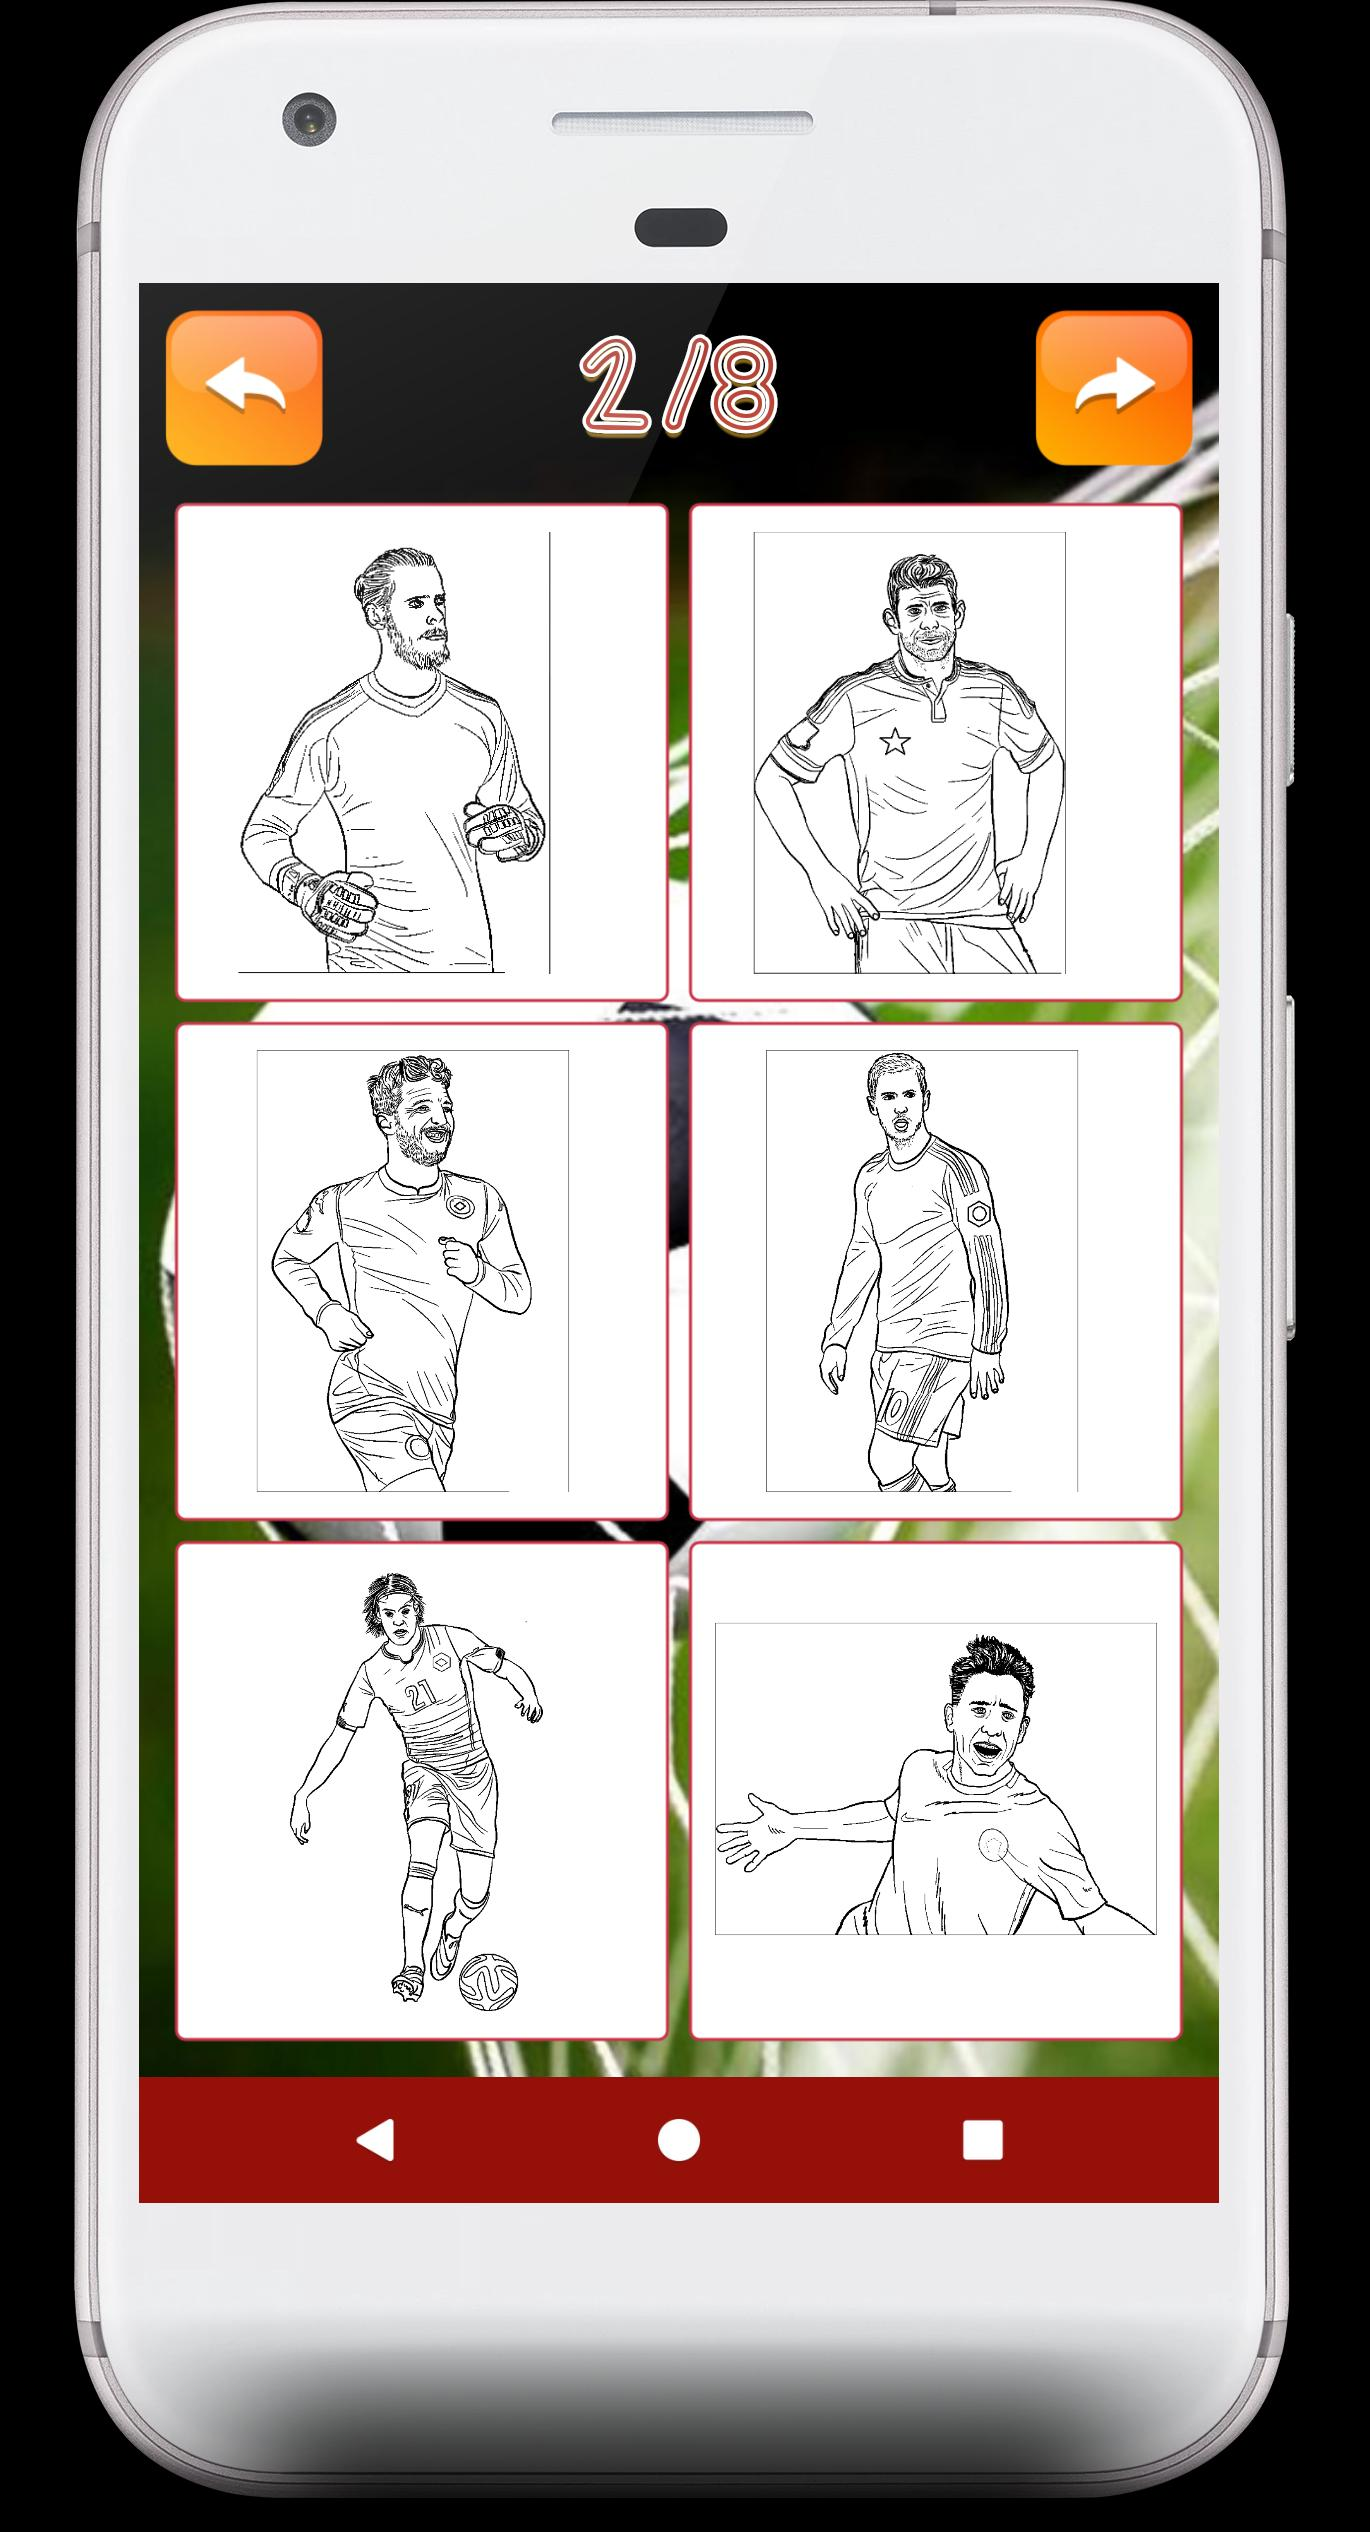 Football Coloring Books - soccer coloring games for Android ...